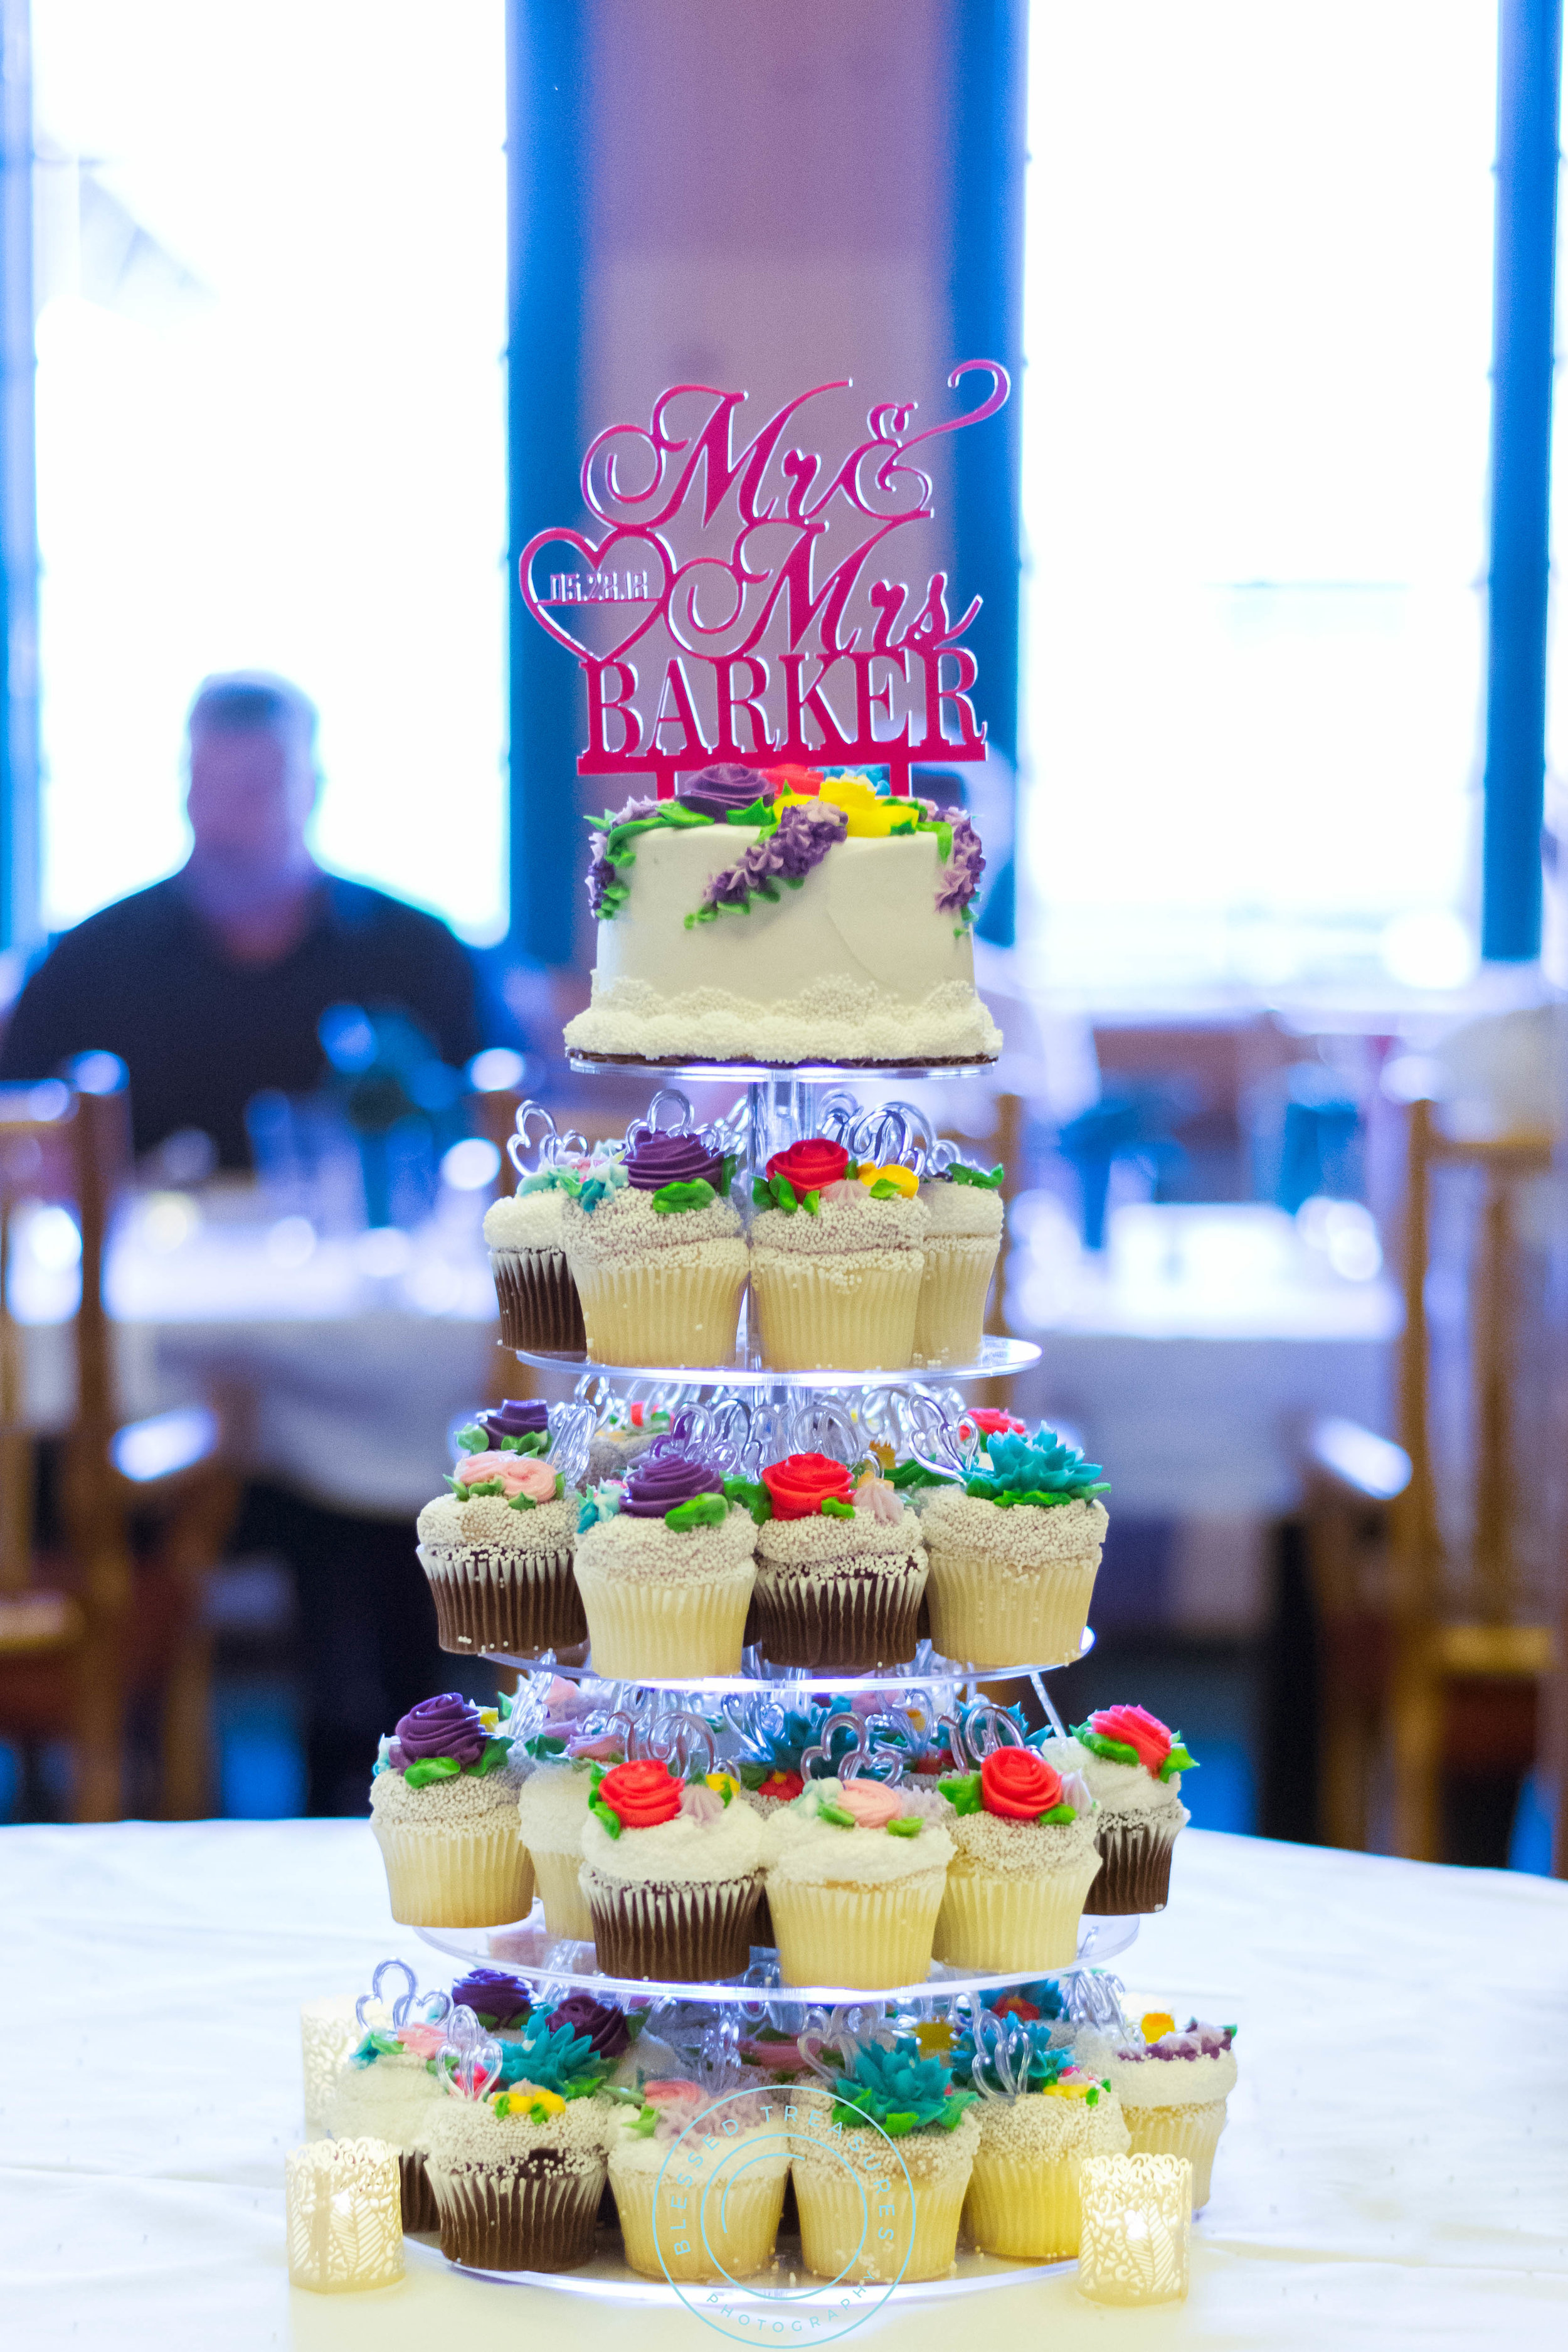 George Young complex banquet hall golf course iron river michigan cupcake tower flowers cake topper